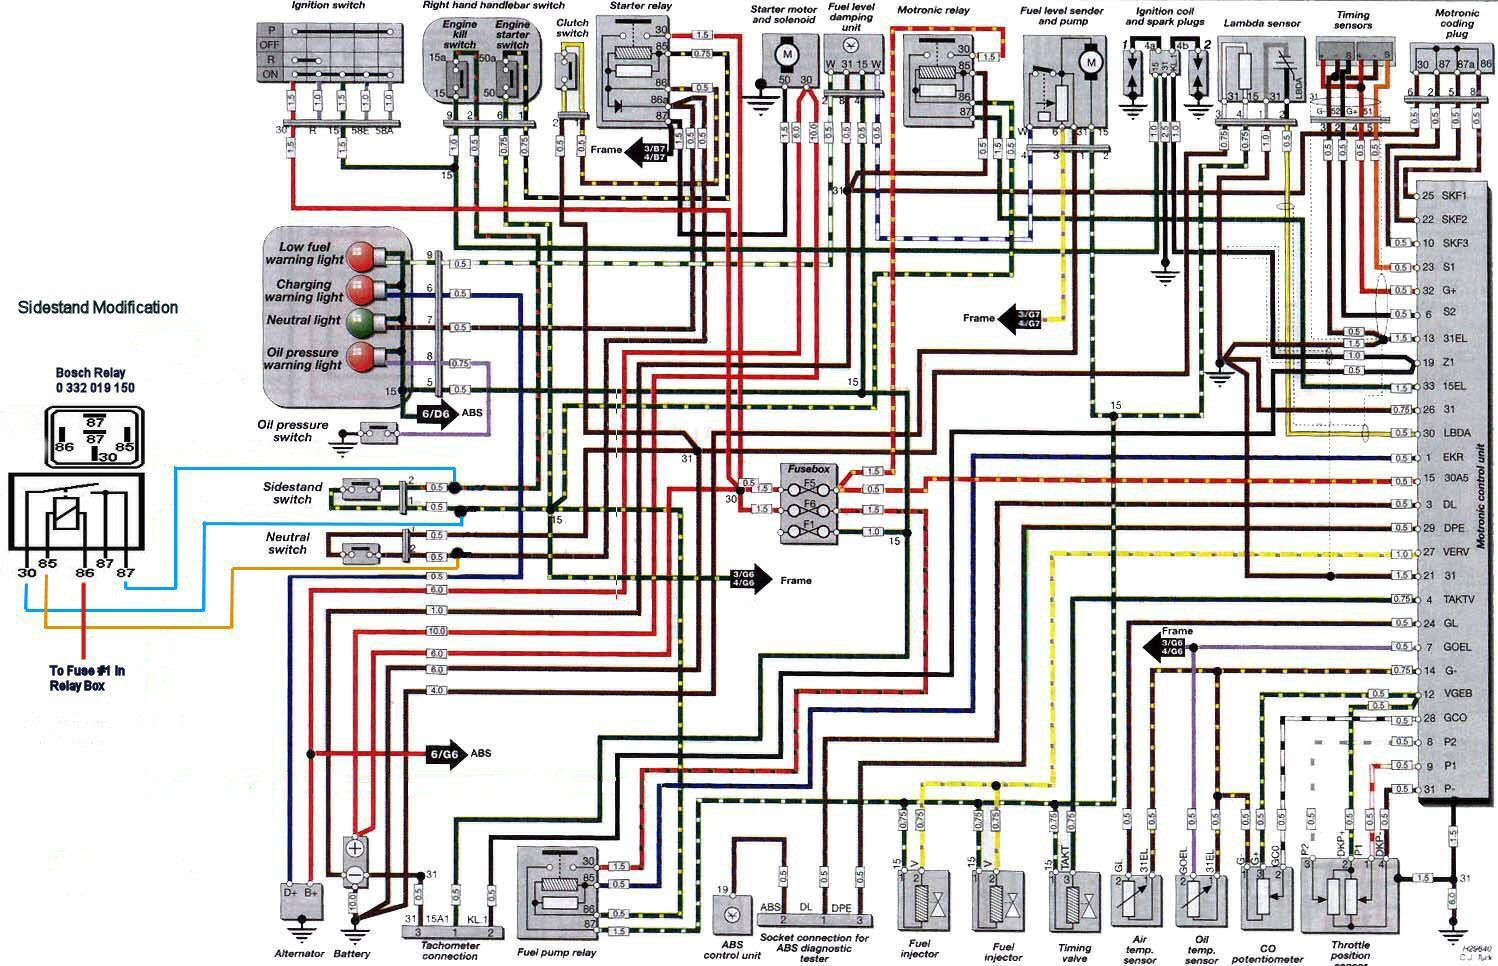 Stupendous Bmw R1150R Electrical Wiring Diagram 1 Bmv Electrical Wiring Wiring Digital Resources Llinedefiancerspsorg